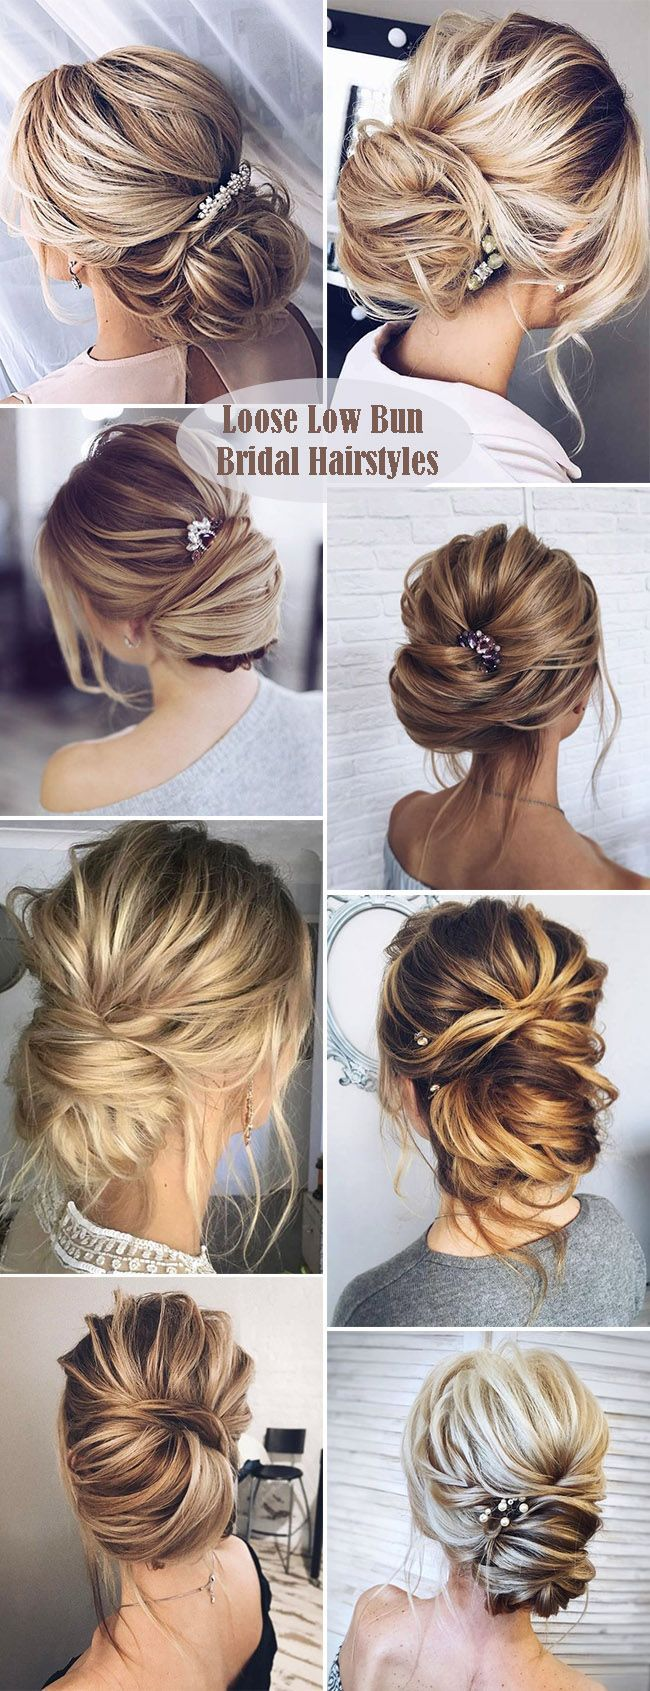 DropDead Wedding Hairstyles for all Brides Weddings